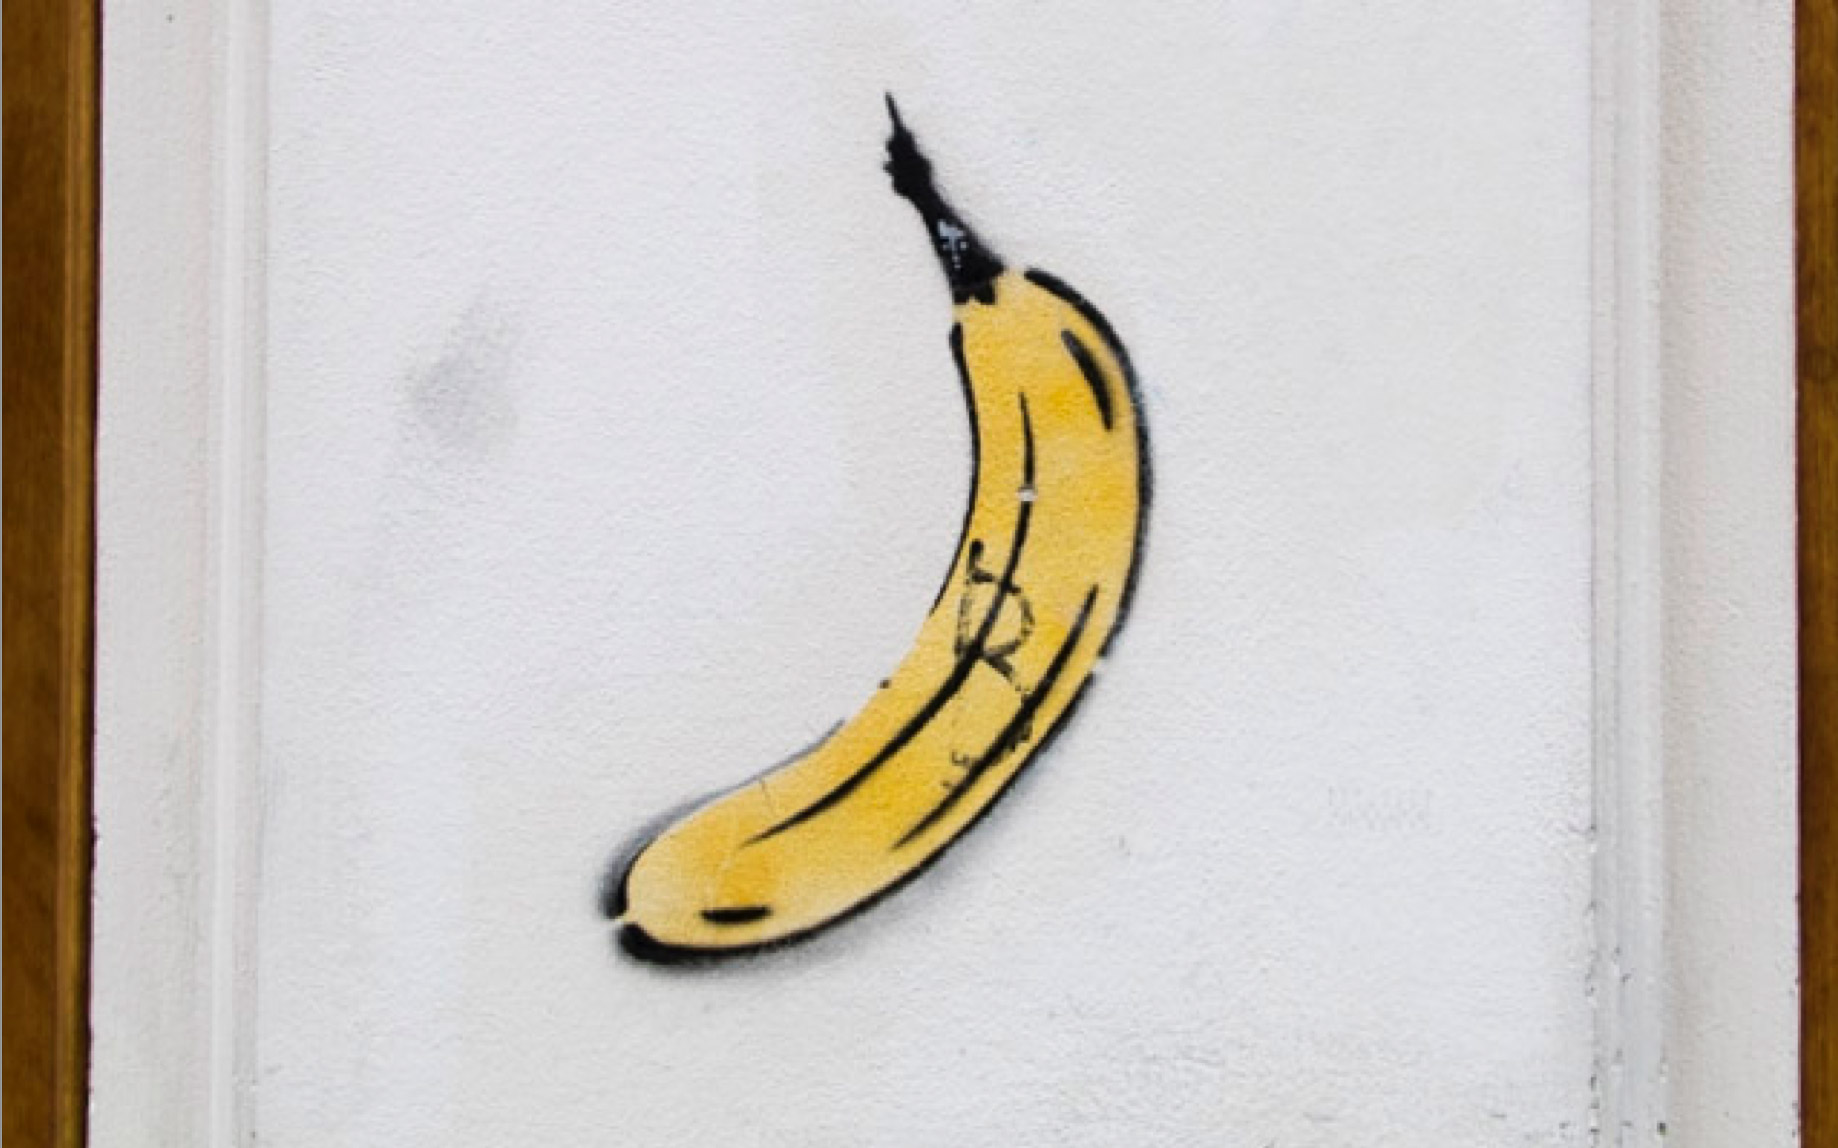 Thomas Baumgarten Bananen Street Art in Berlin